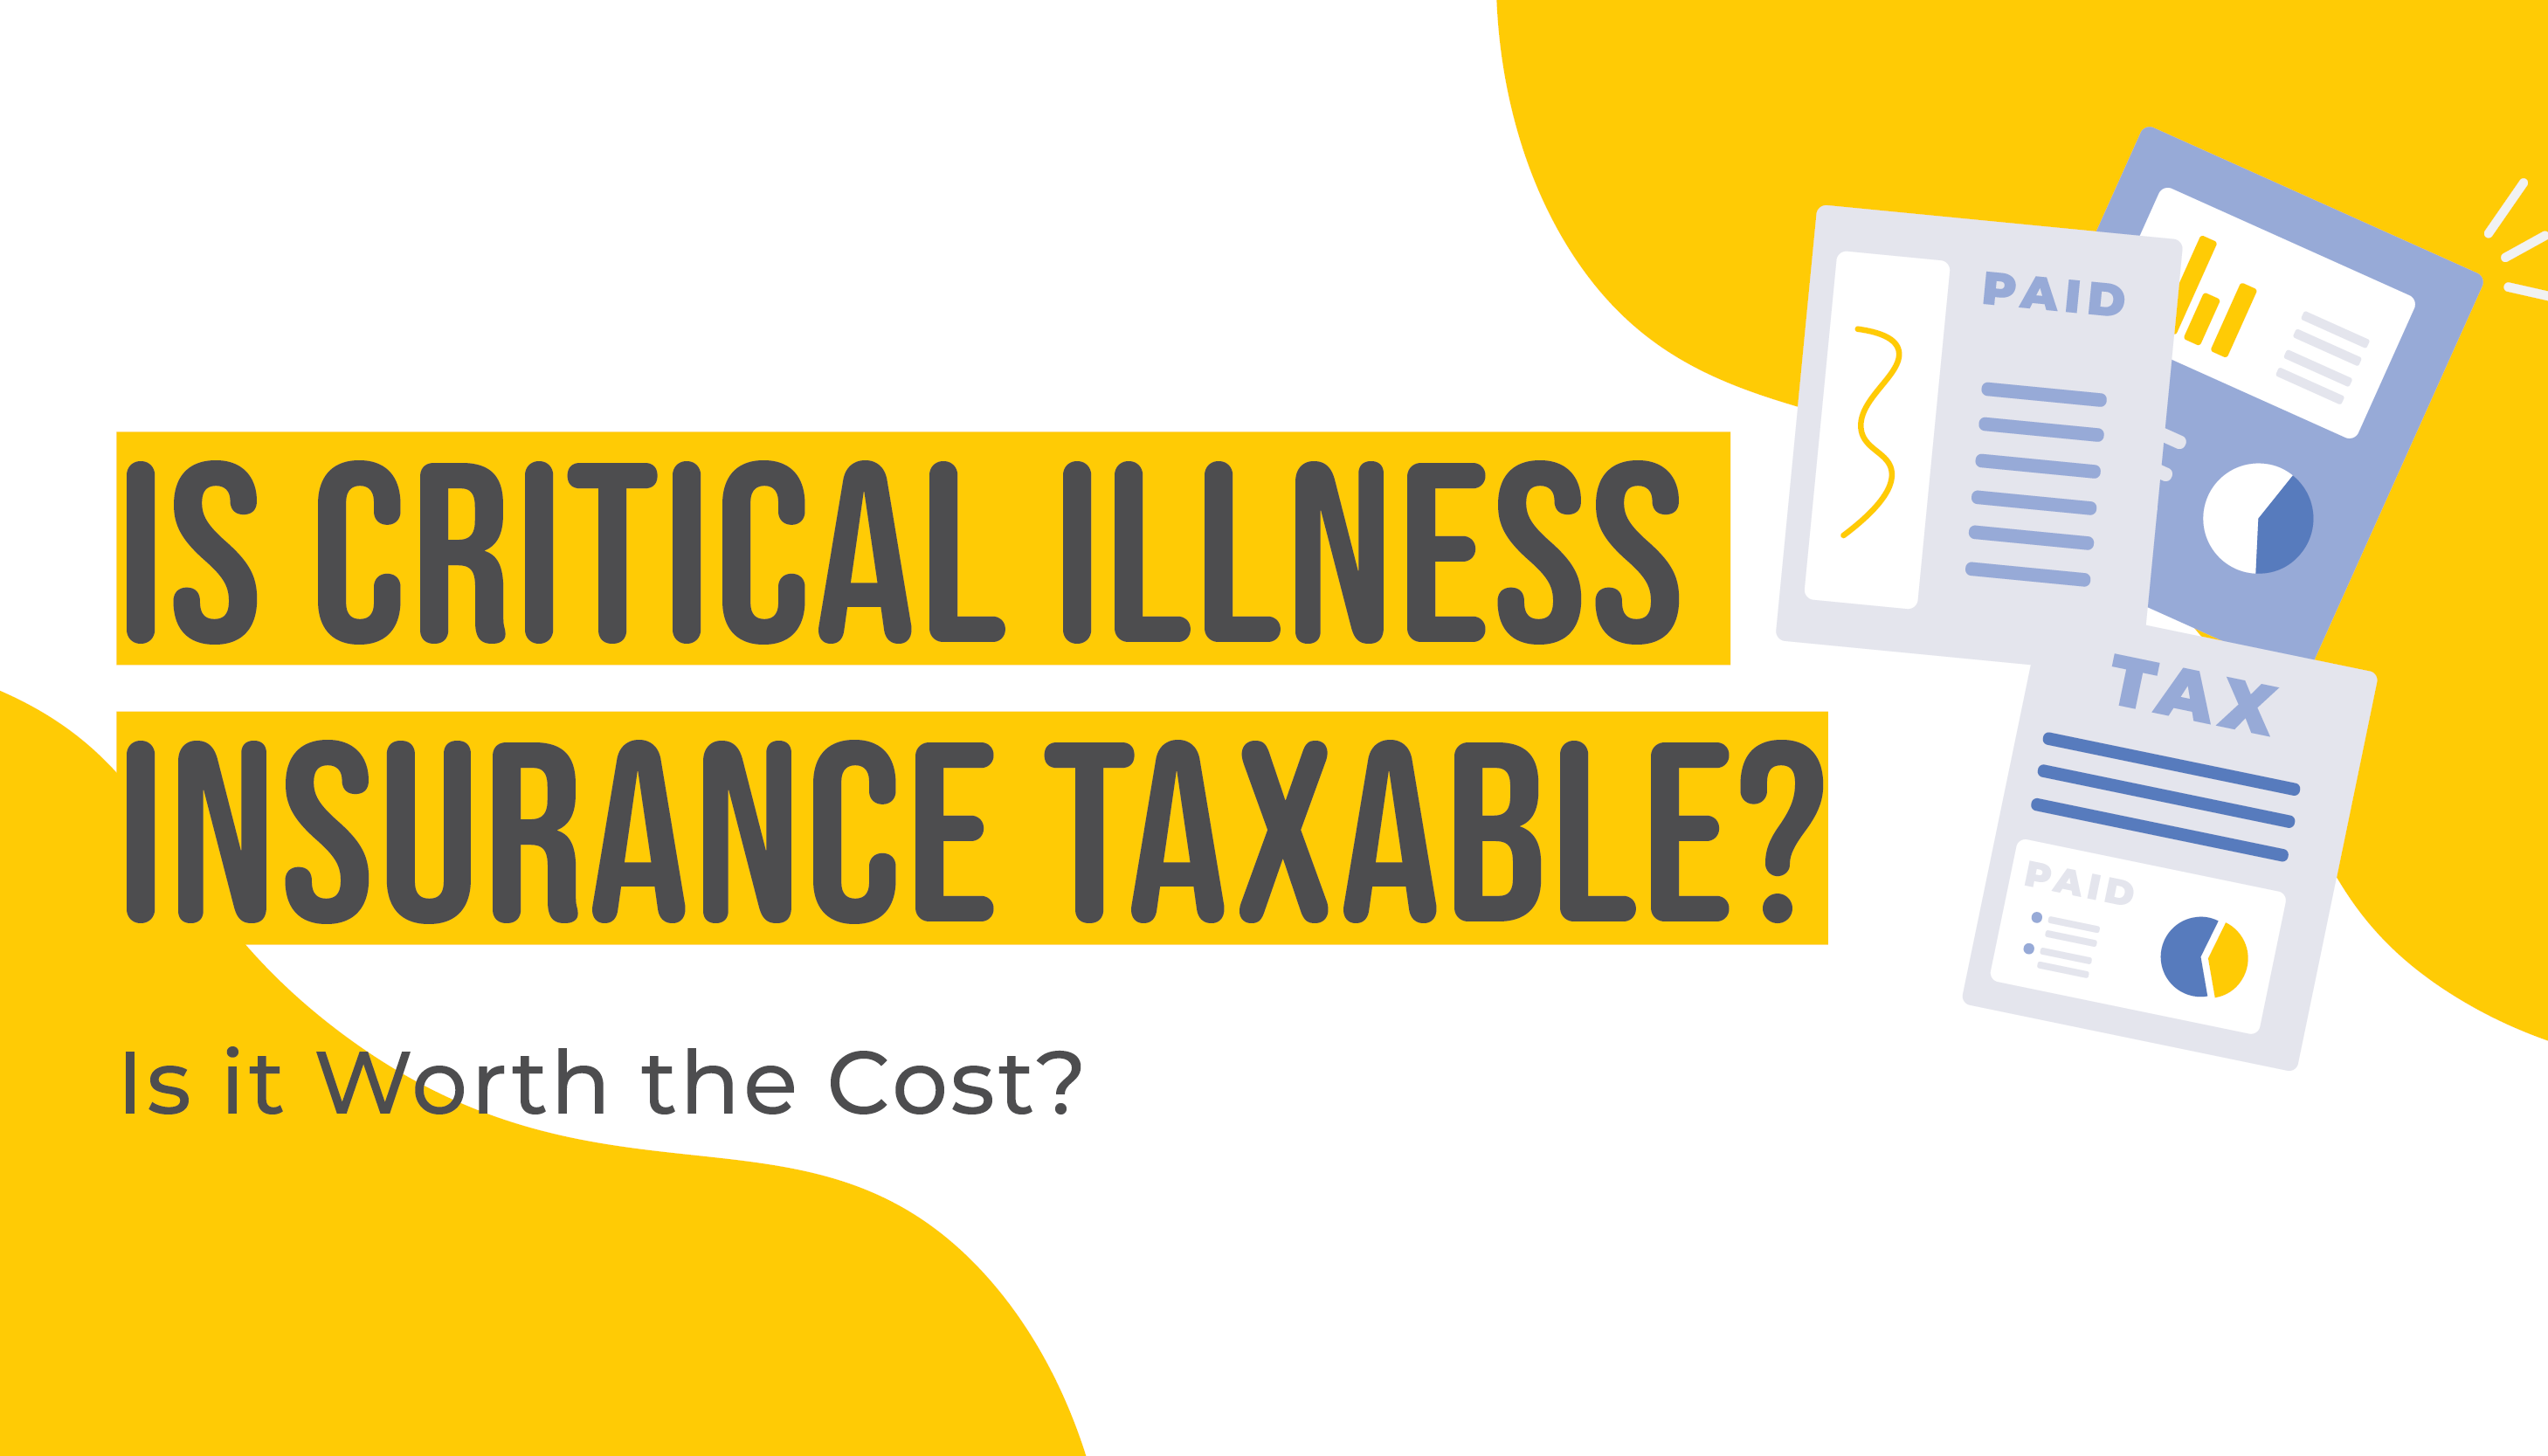 Is Critical Illness Insurance Taxable? Is it Worth the Cost?   Vector Images of Documents   Benefits by Design